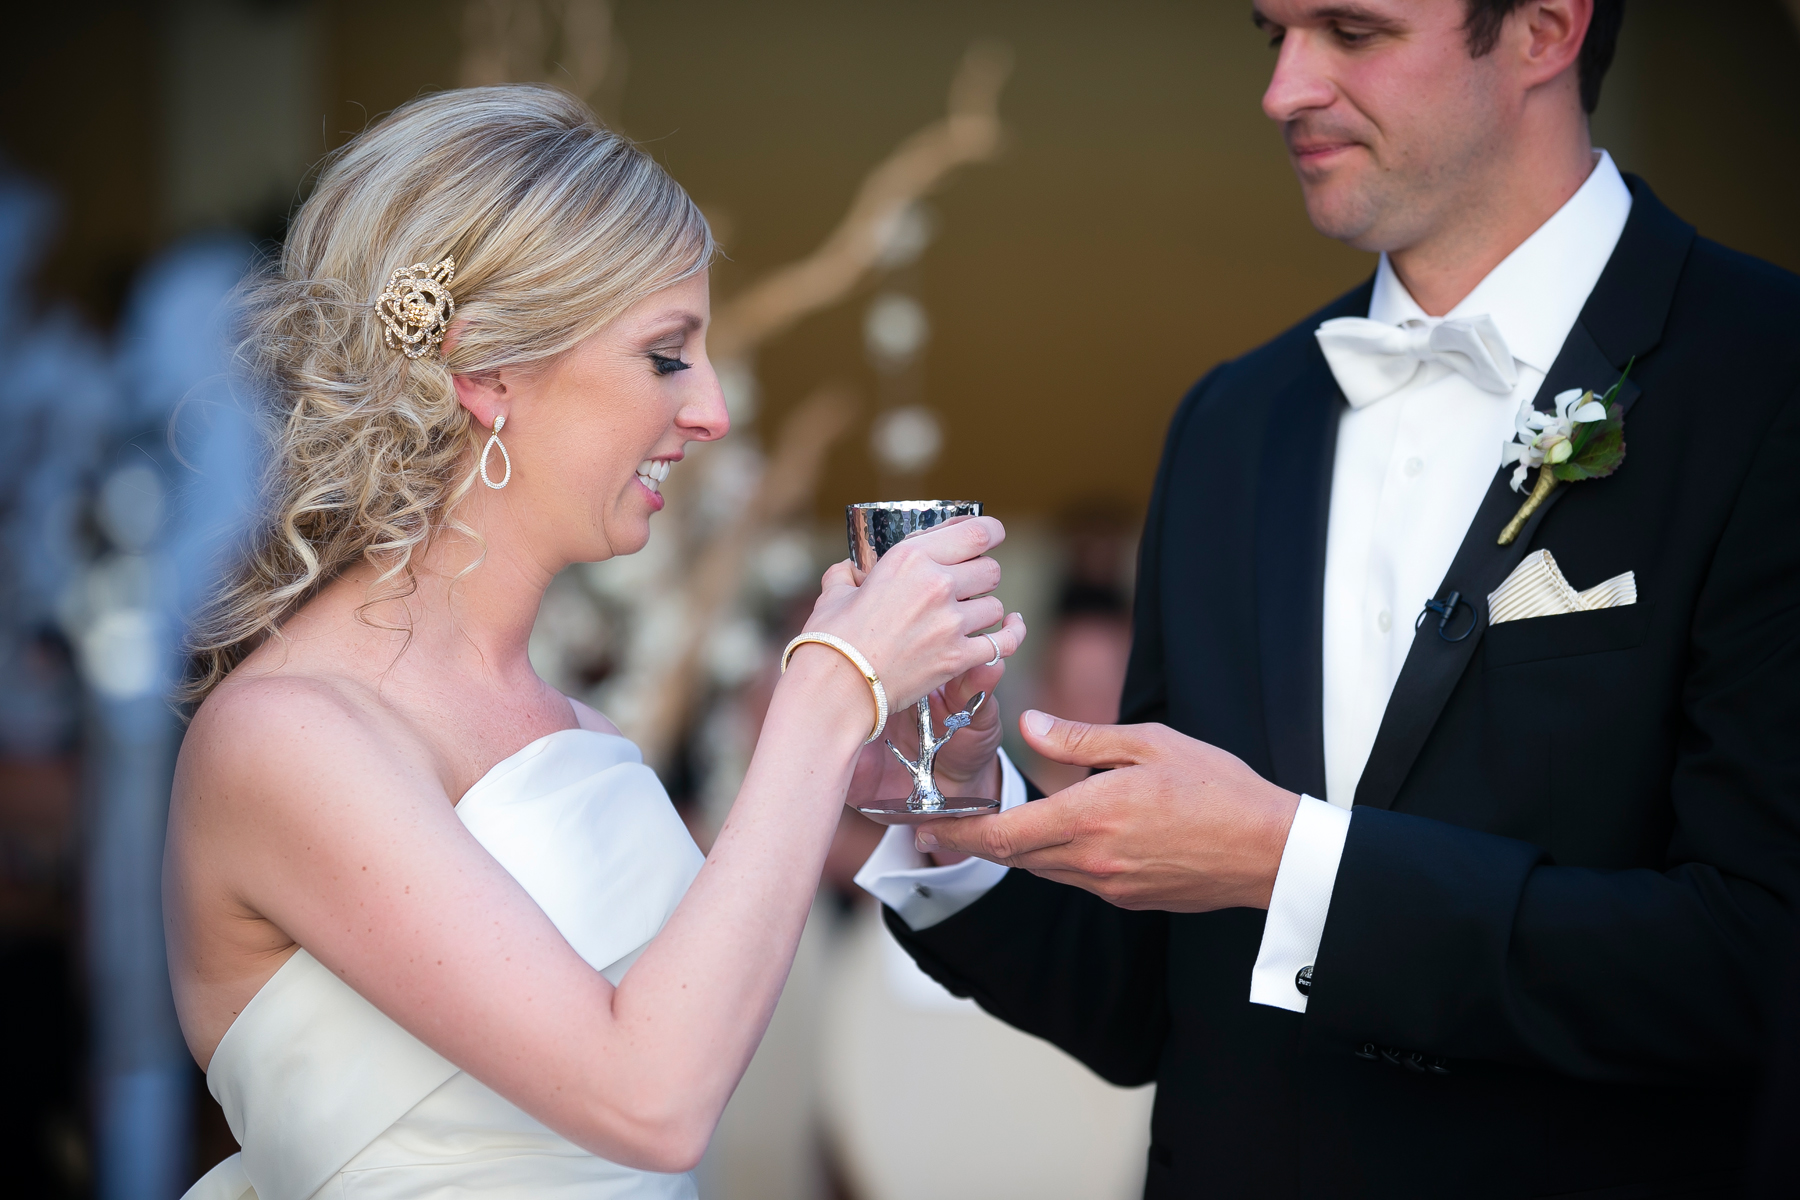 The bride & groom shared kosher wine from a kiddish cup.  Wedding Venue: Bellagio Las Vegas.  Location: The Grand Patio. Photo by www.ronmiller.com . Las Vegas Wedding Planner: Andrea Eppolito Events .